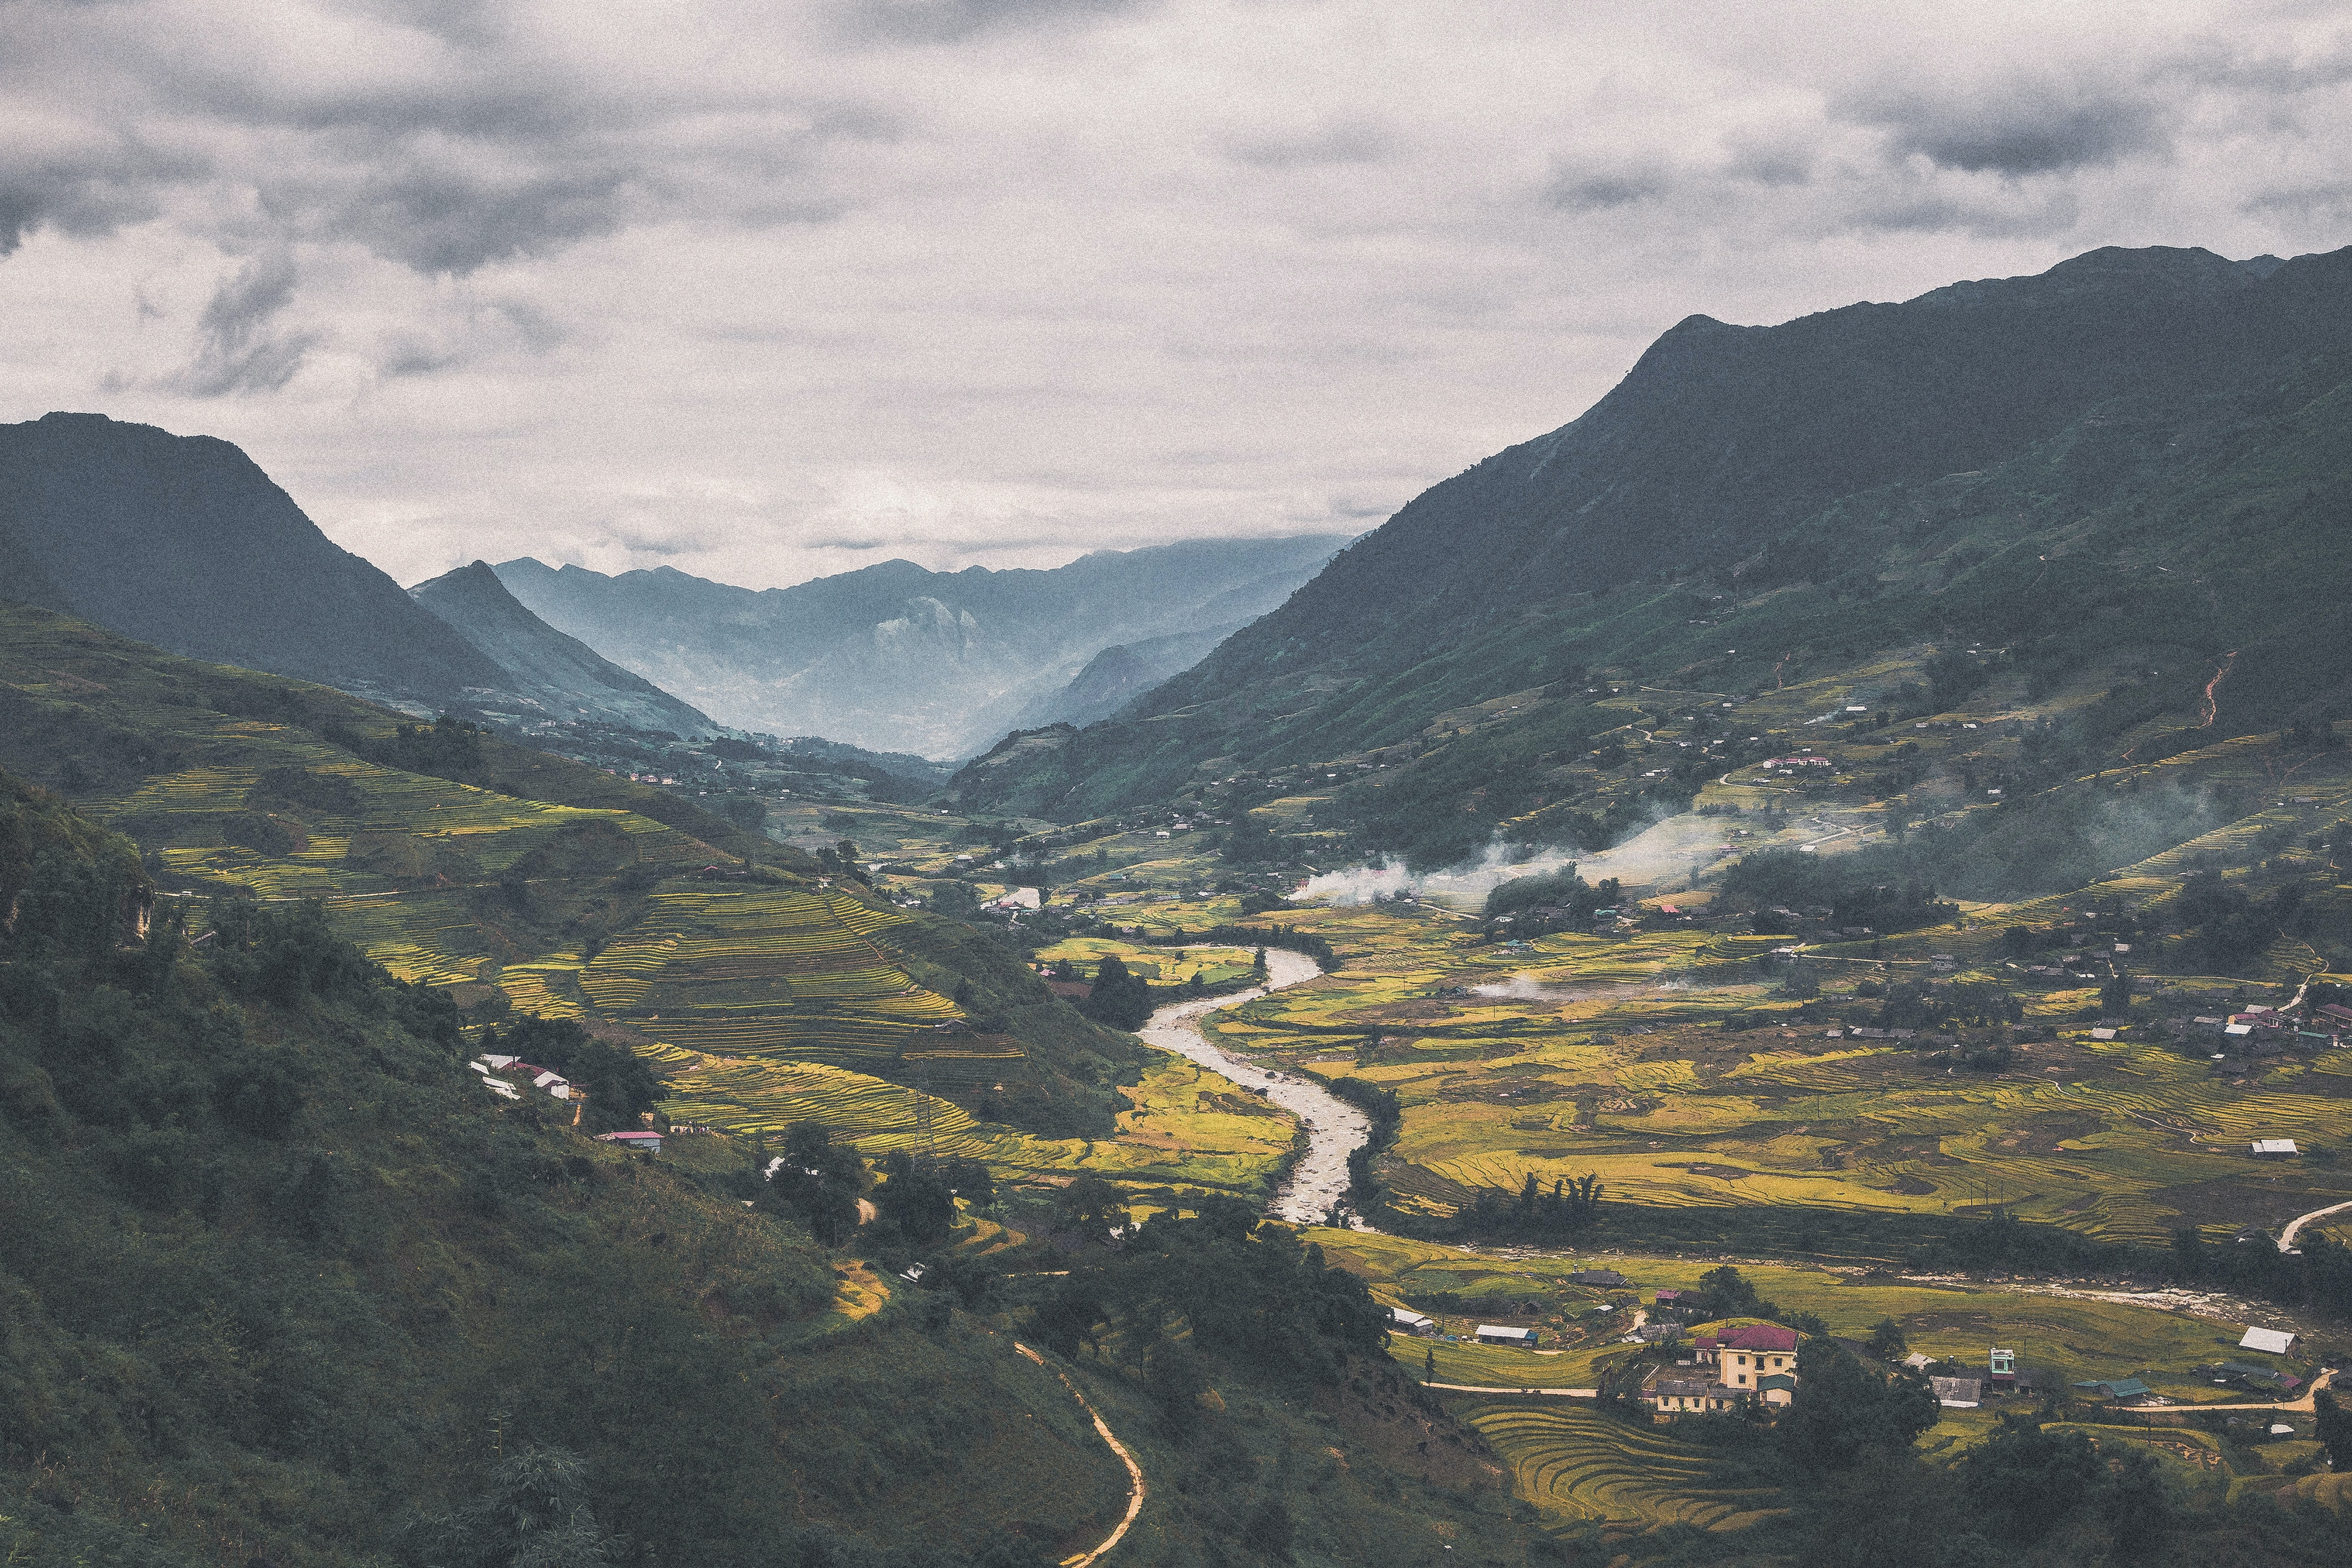 A magnificent mountain village on a small river in Vietnam